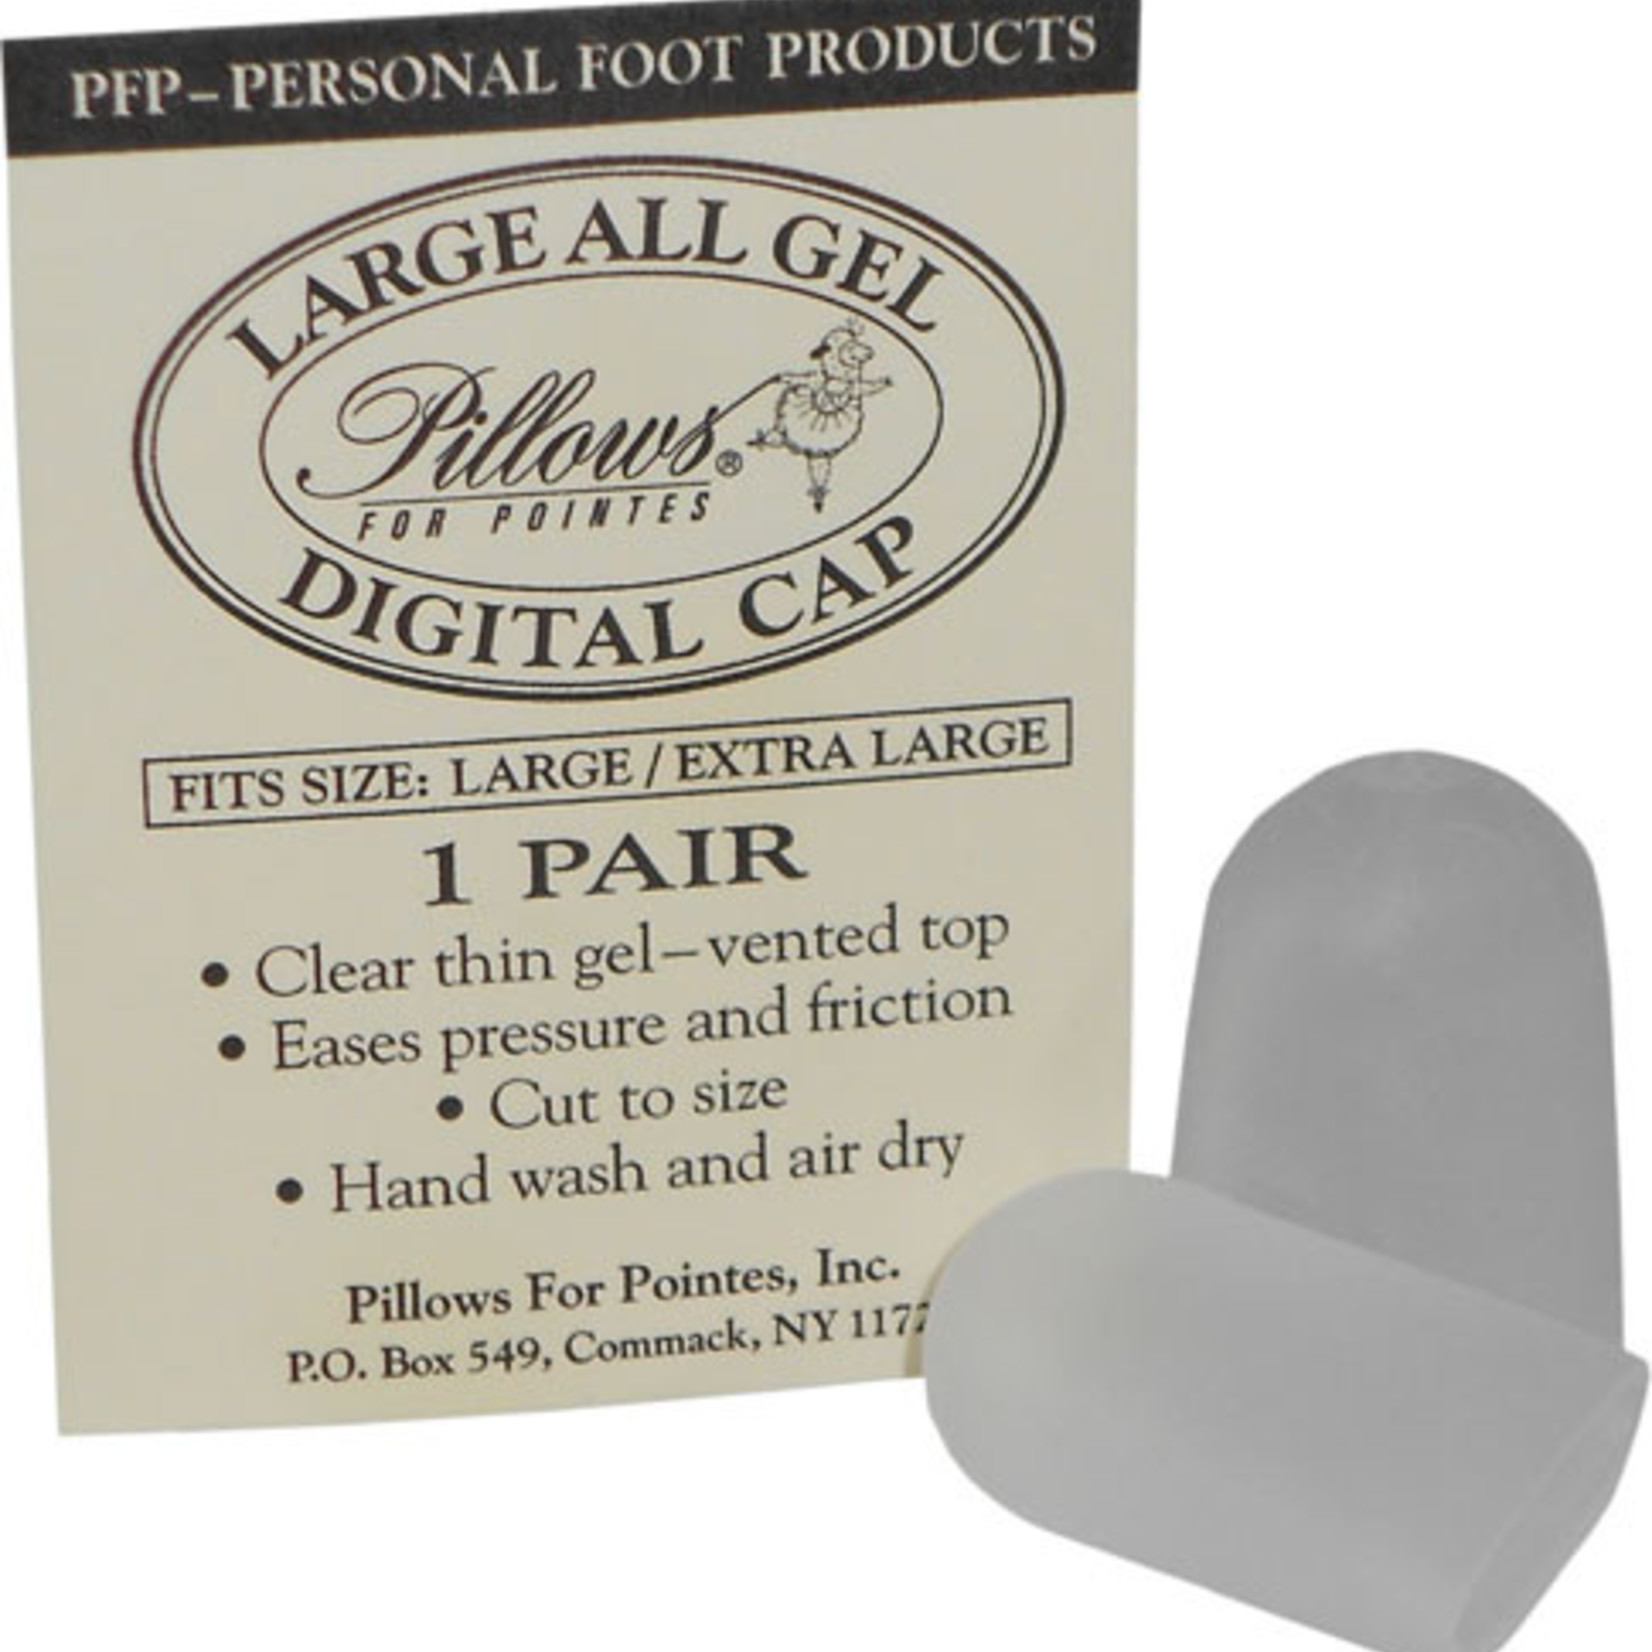 Pillows for Pointes Pillows for Pointes All Gel Digital Cap Large